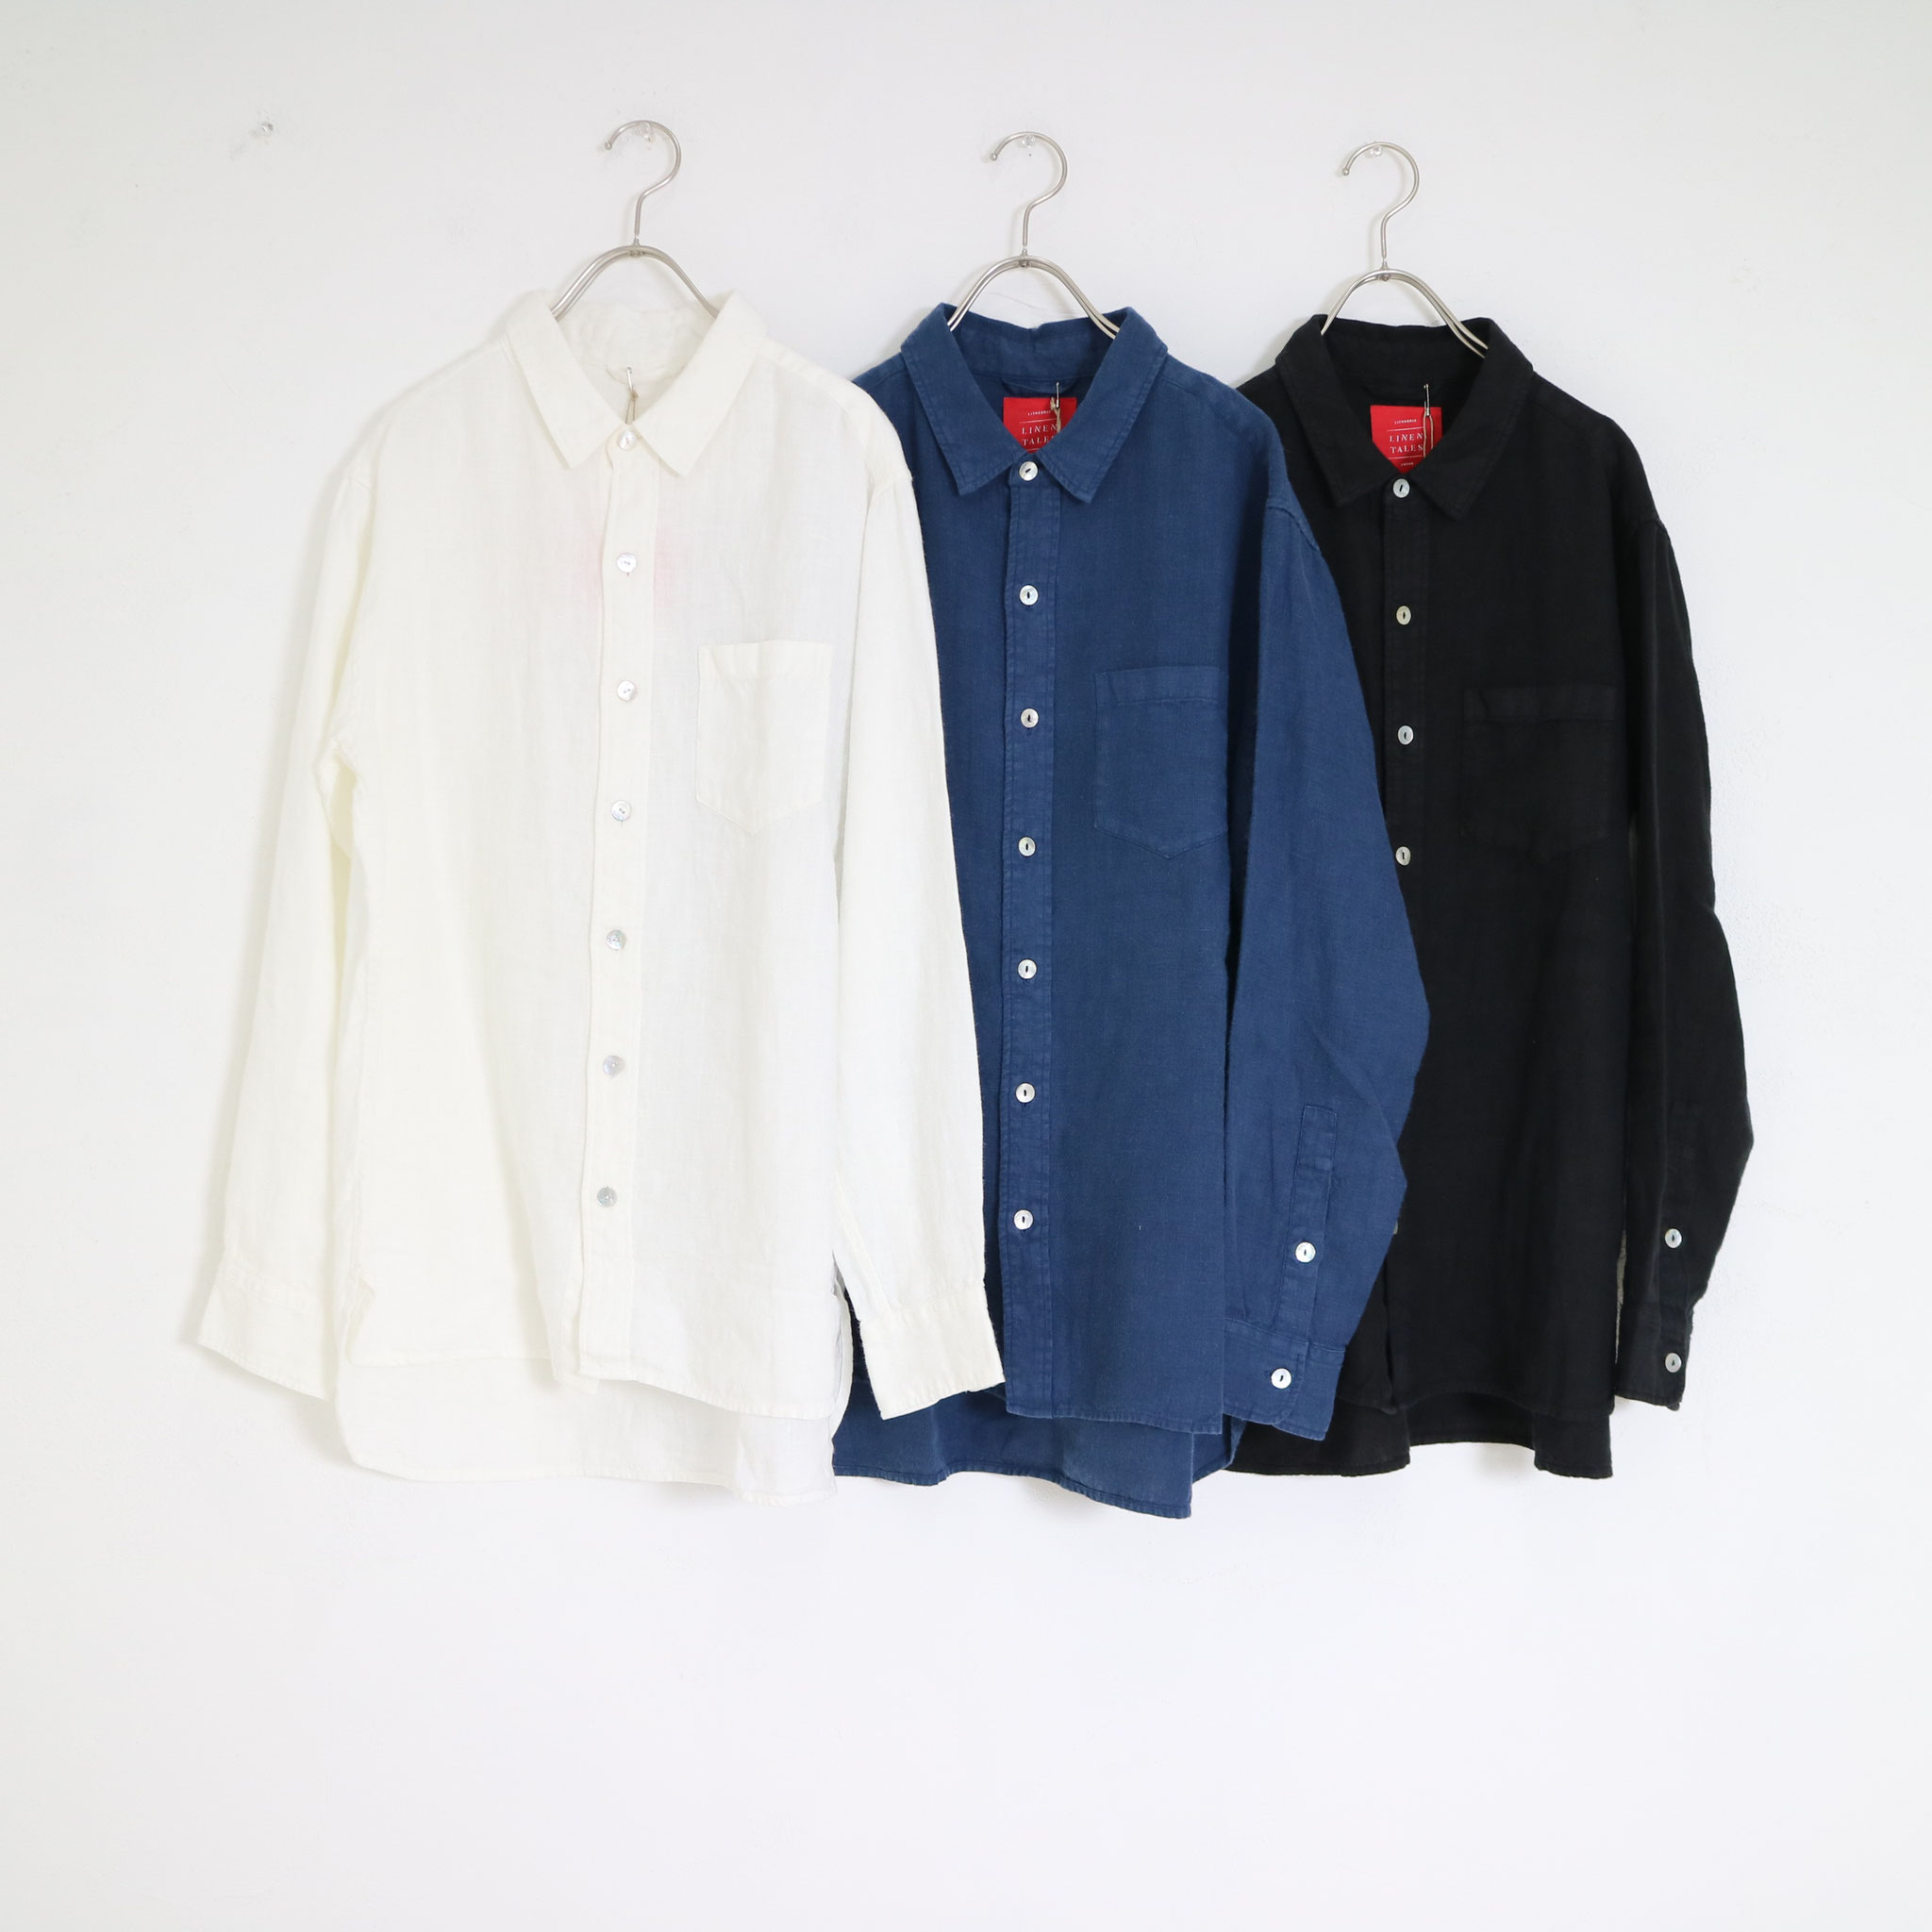 White→ Navy→ Black